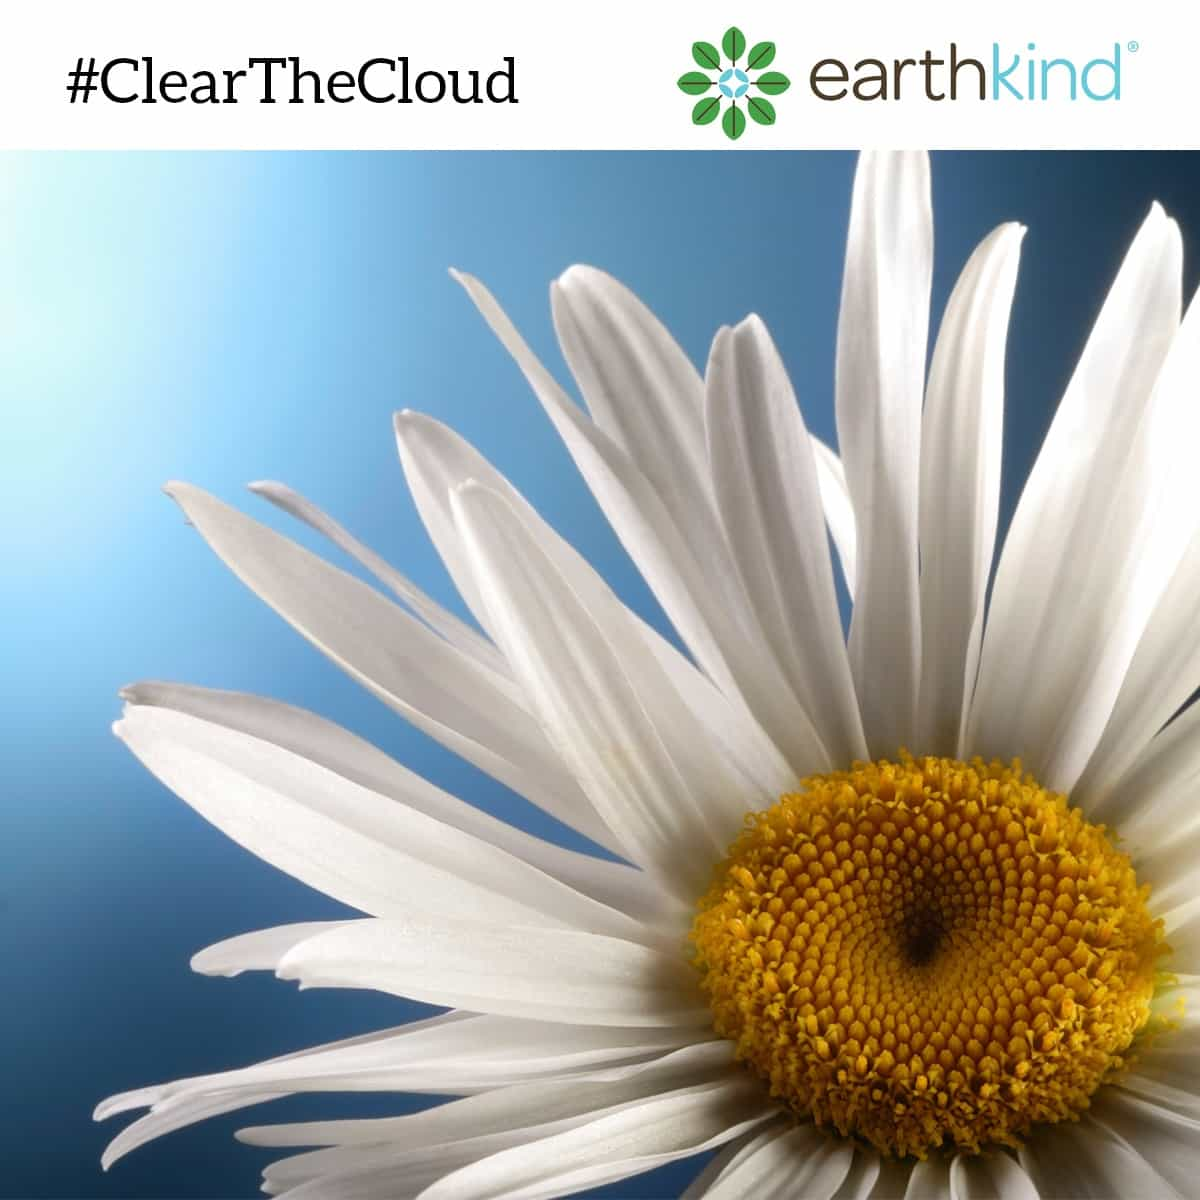 EarthKind Clear The Cloud Campaign Gives Tips to Rid Your Home of Chemicals